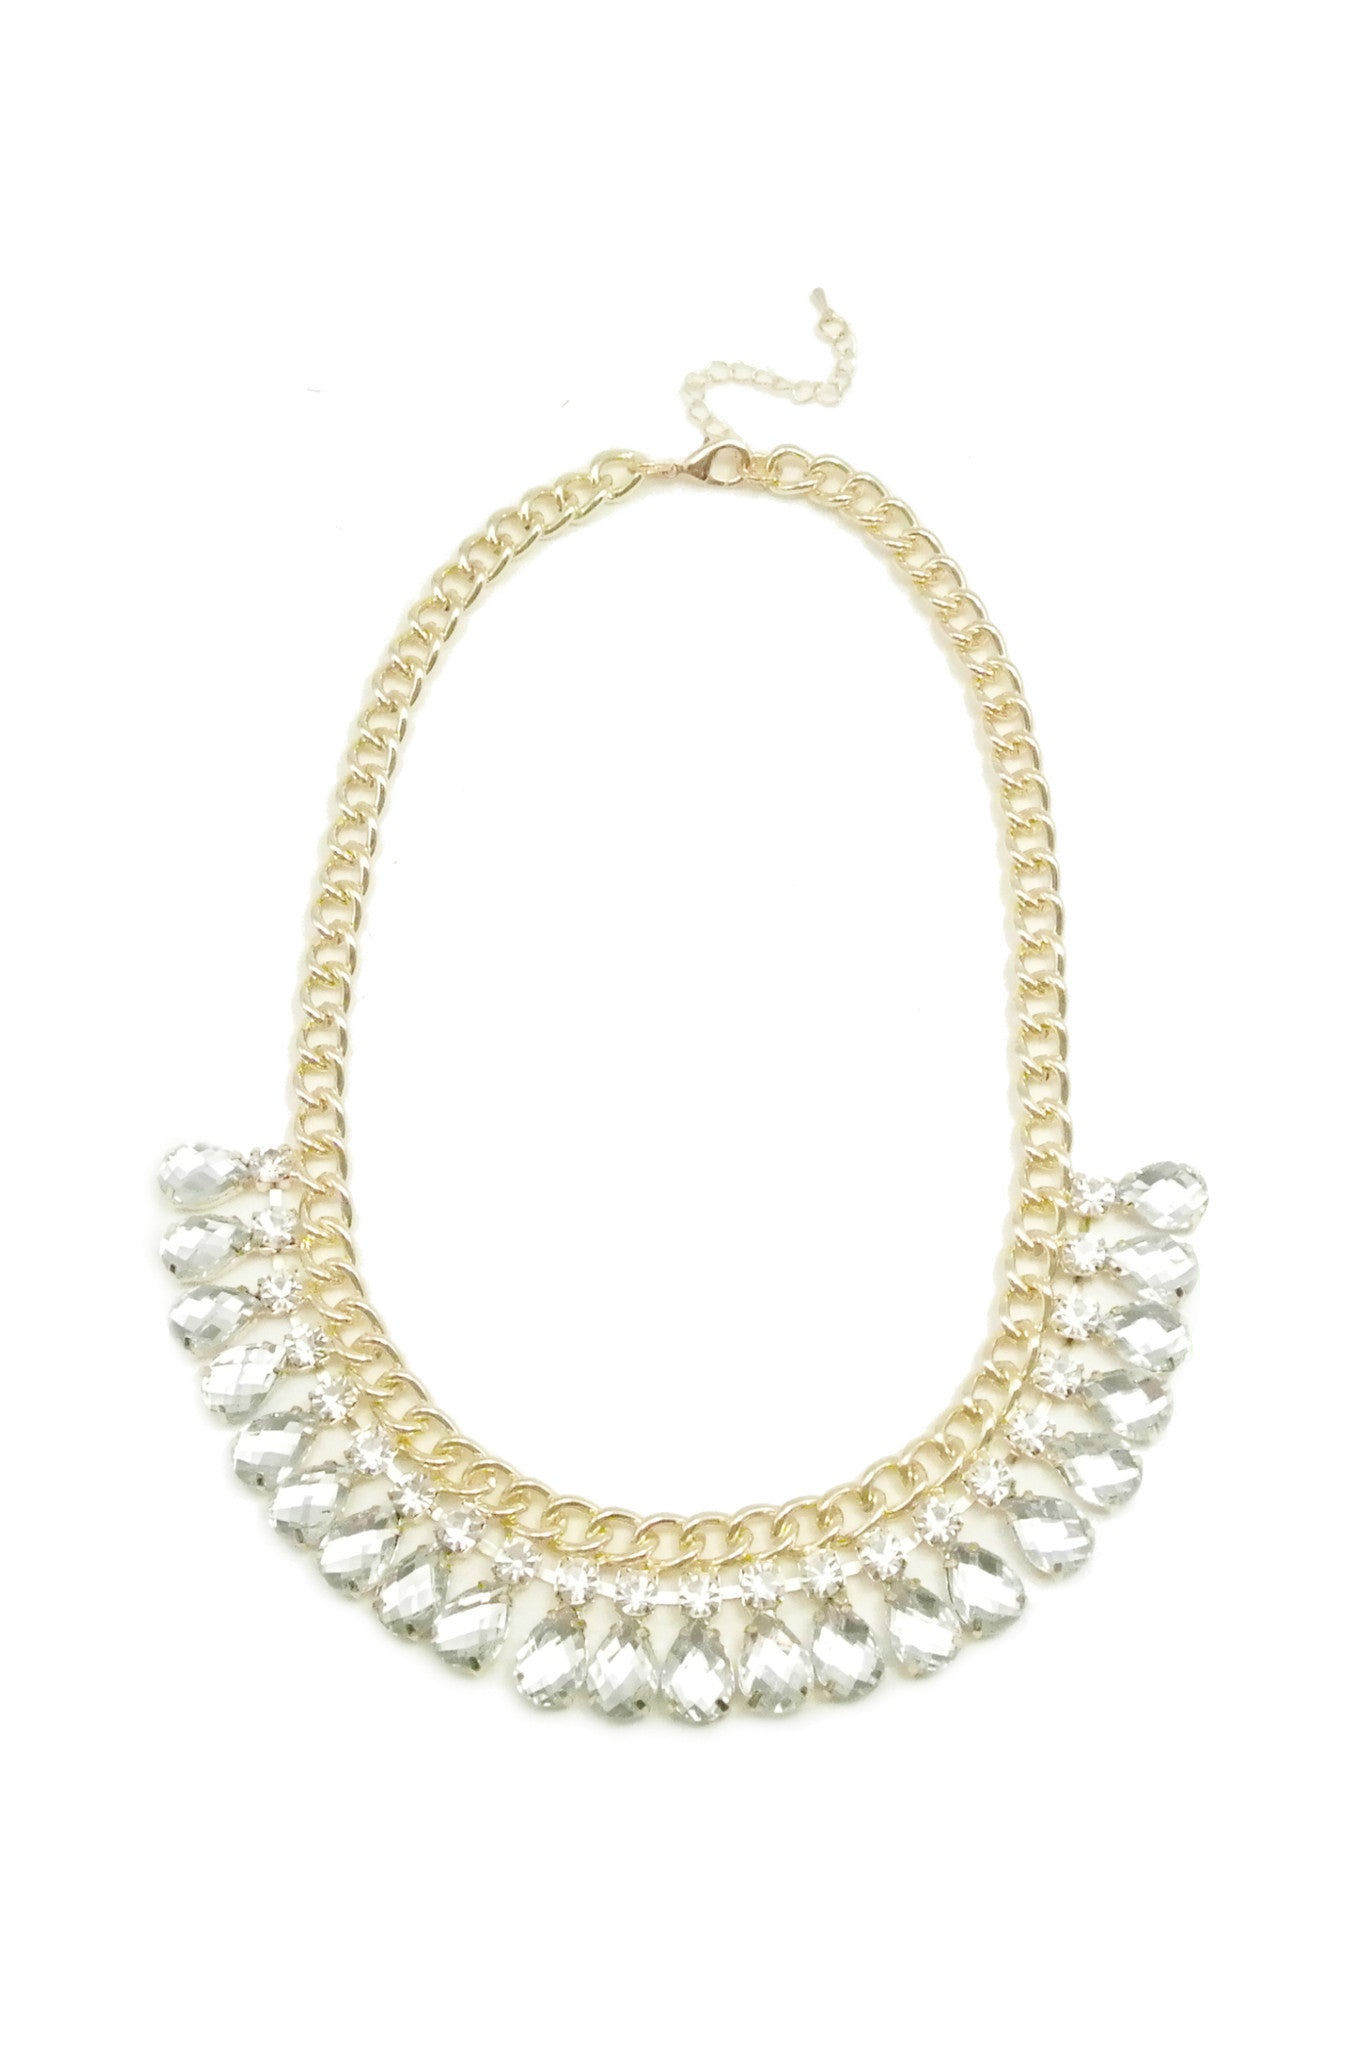 Lucite Radiance Necklace